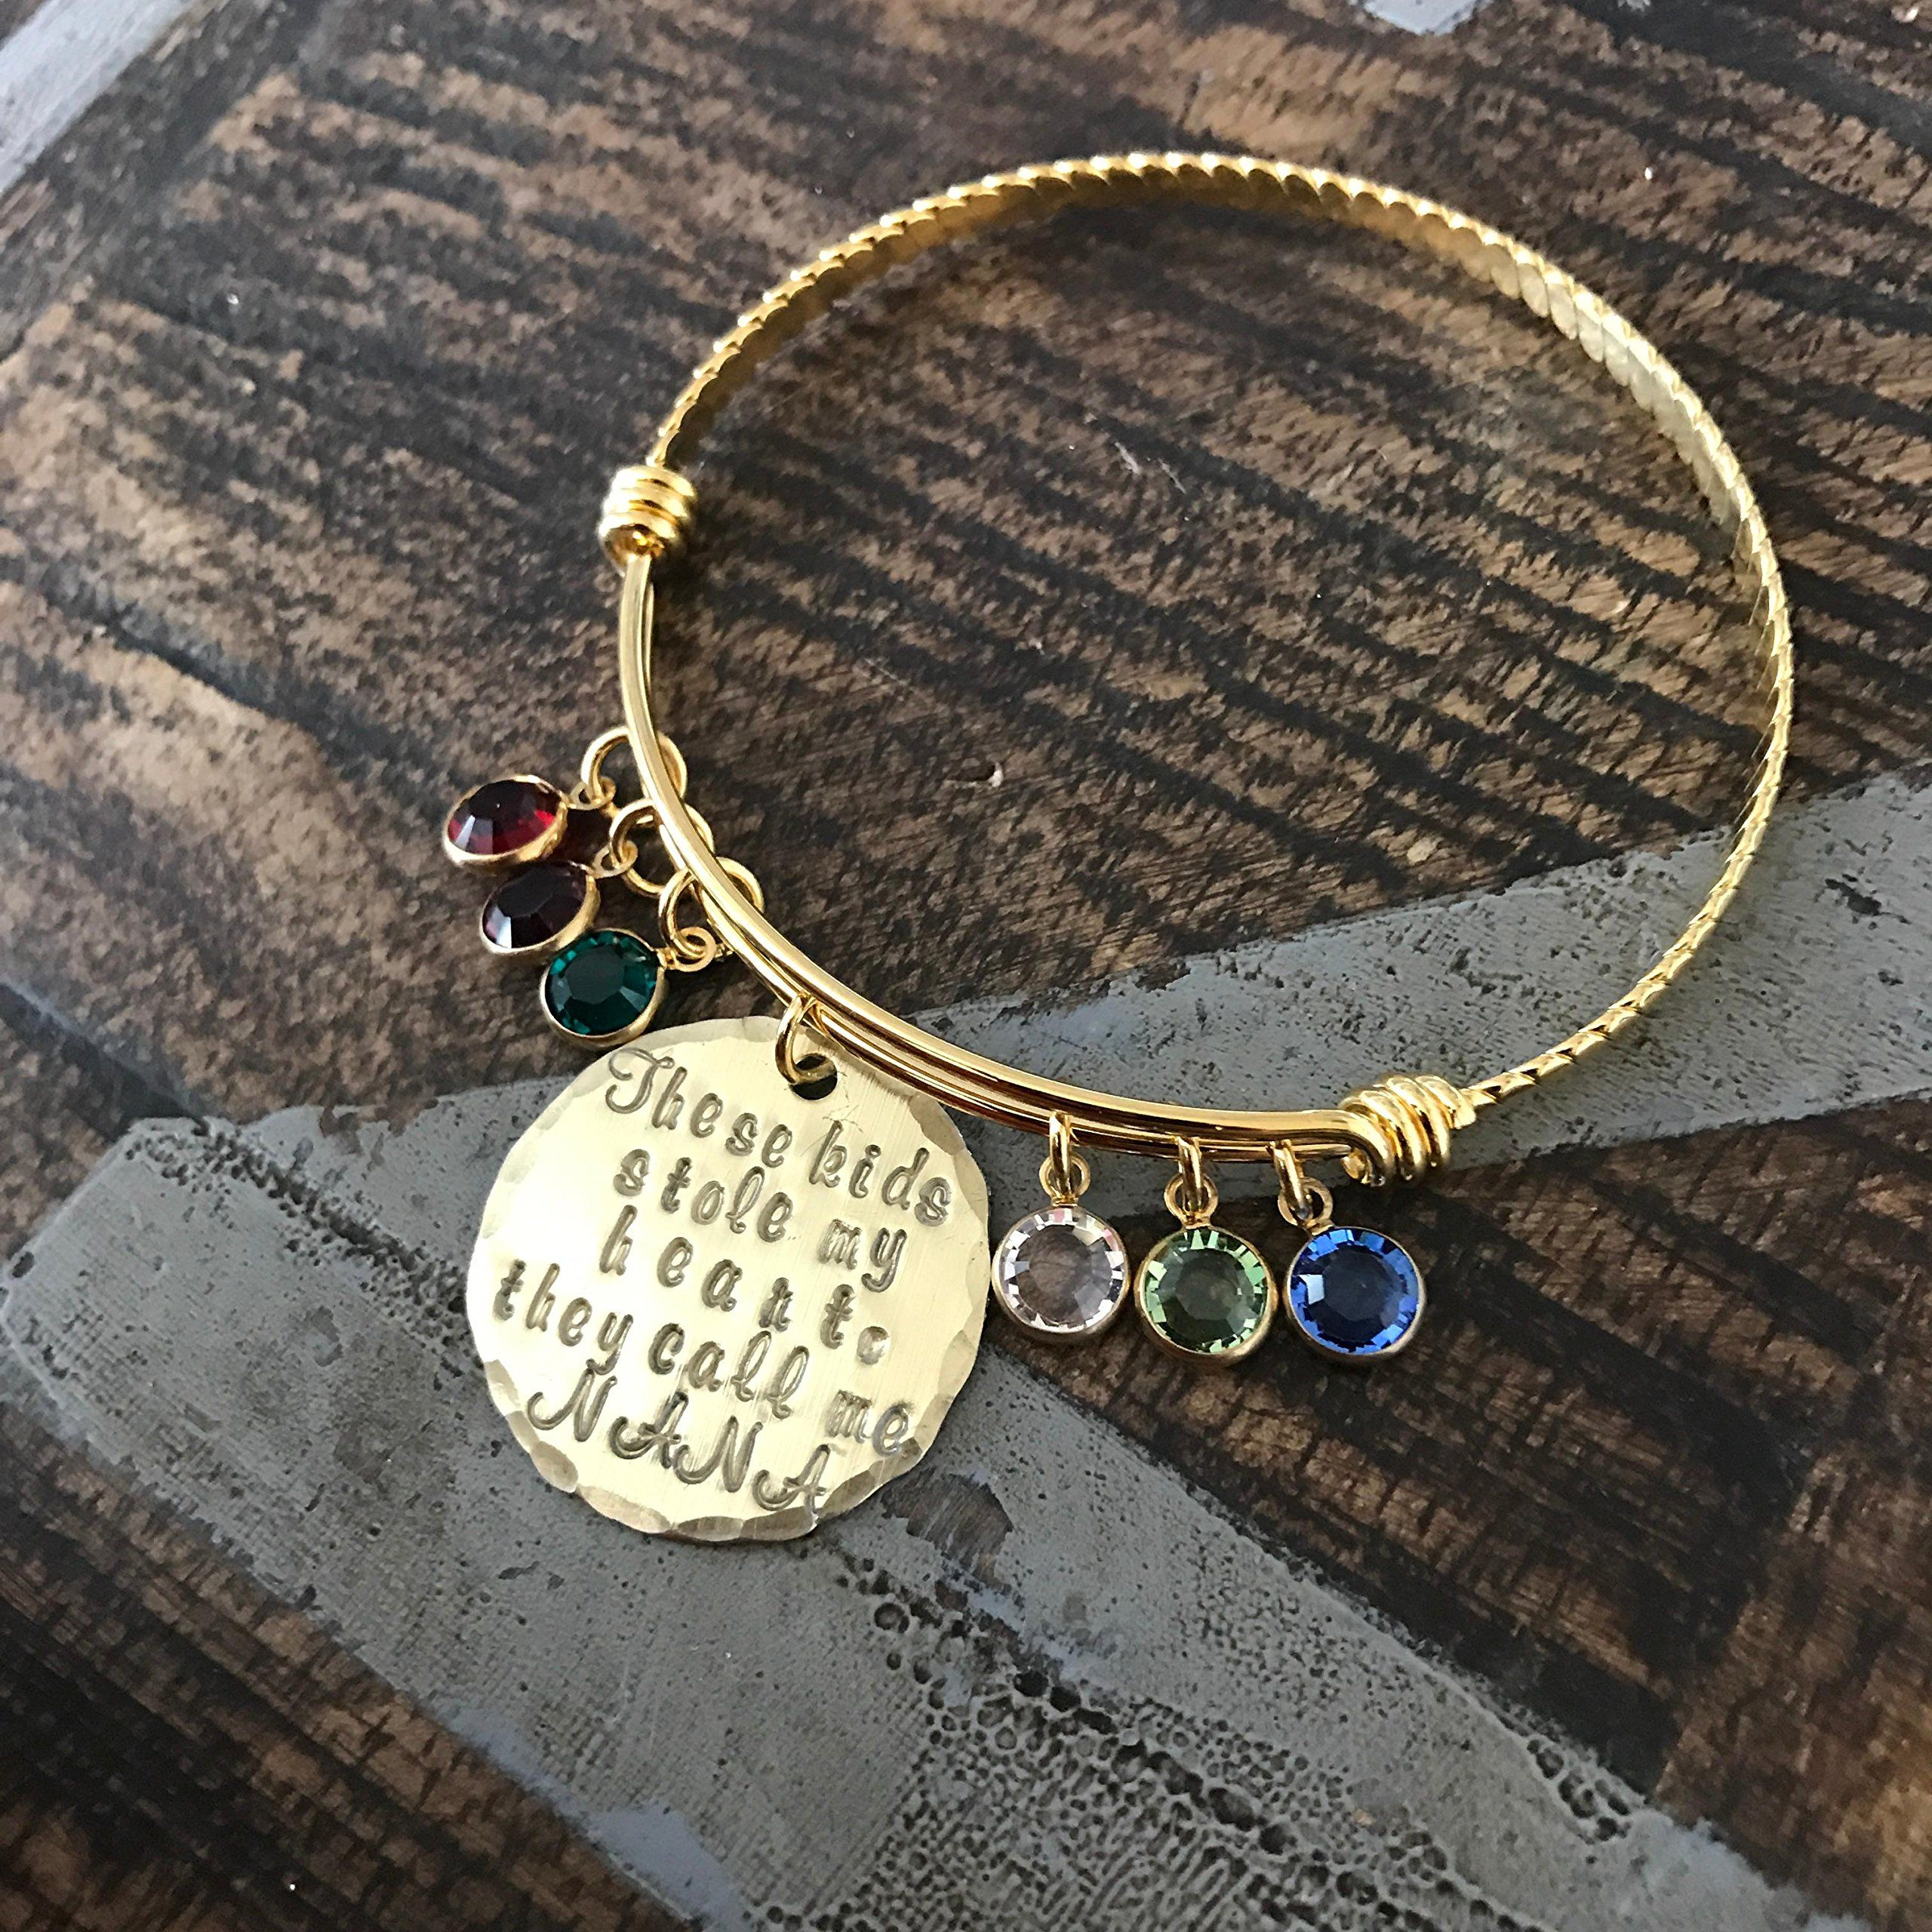 jewelry giftmothers daypersonalized mother fullxfull handstamped handmademothers gift for p handmade bracelet her personalized il bangle